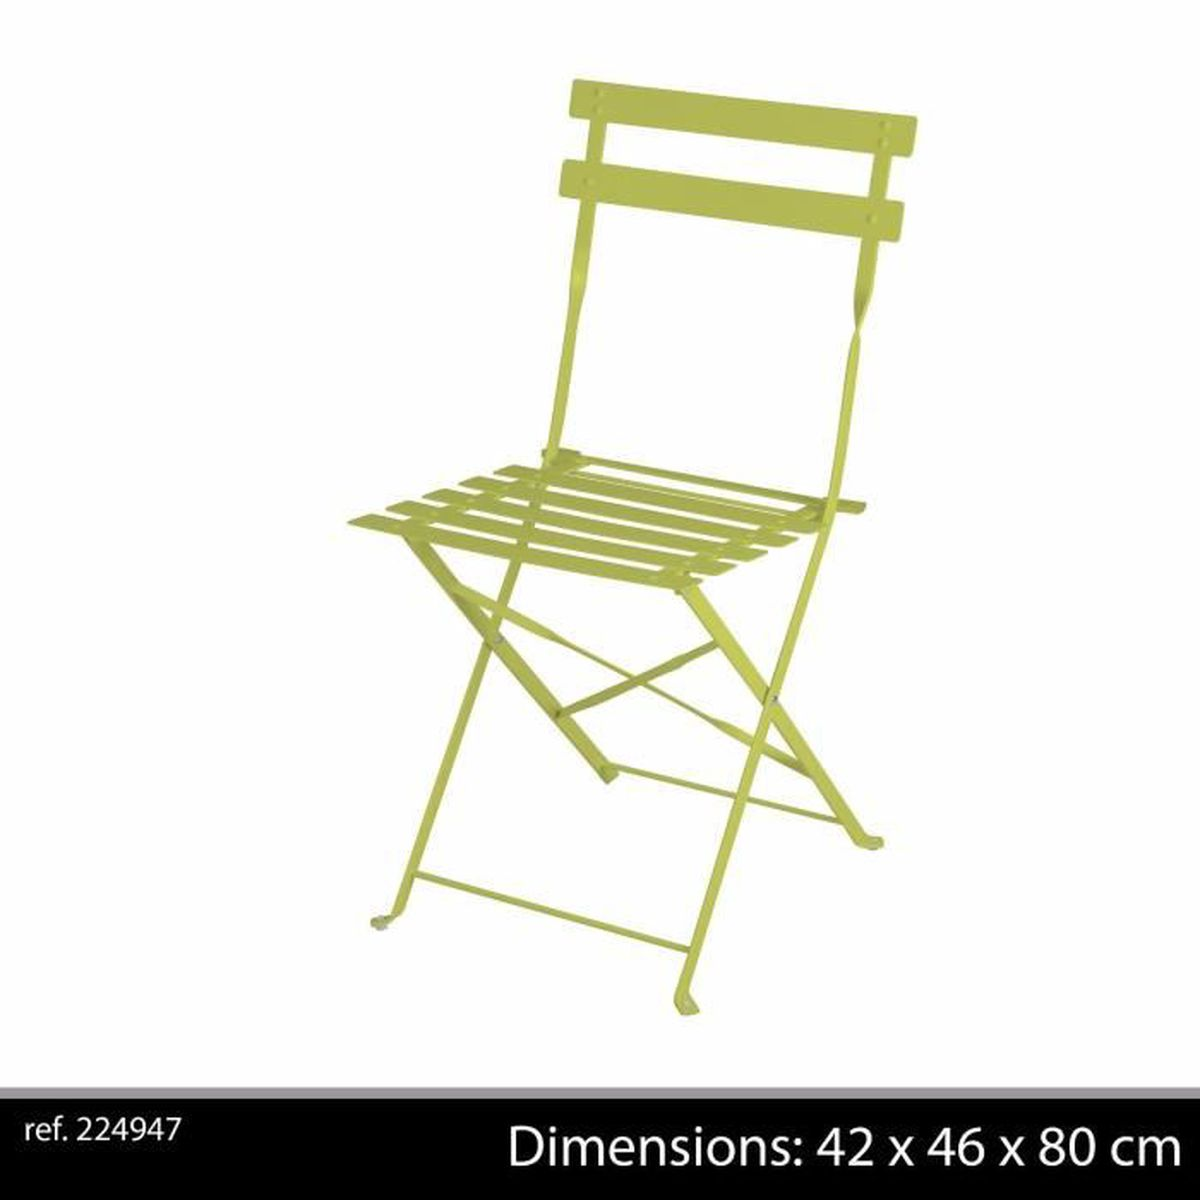 chaise pliante a lattes pour jardin fauteuil en metal design bistro cafe salon exterieur achat. Black Bedroom Furniture Sets. Home Design Ideas